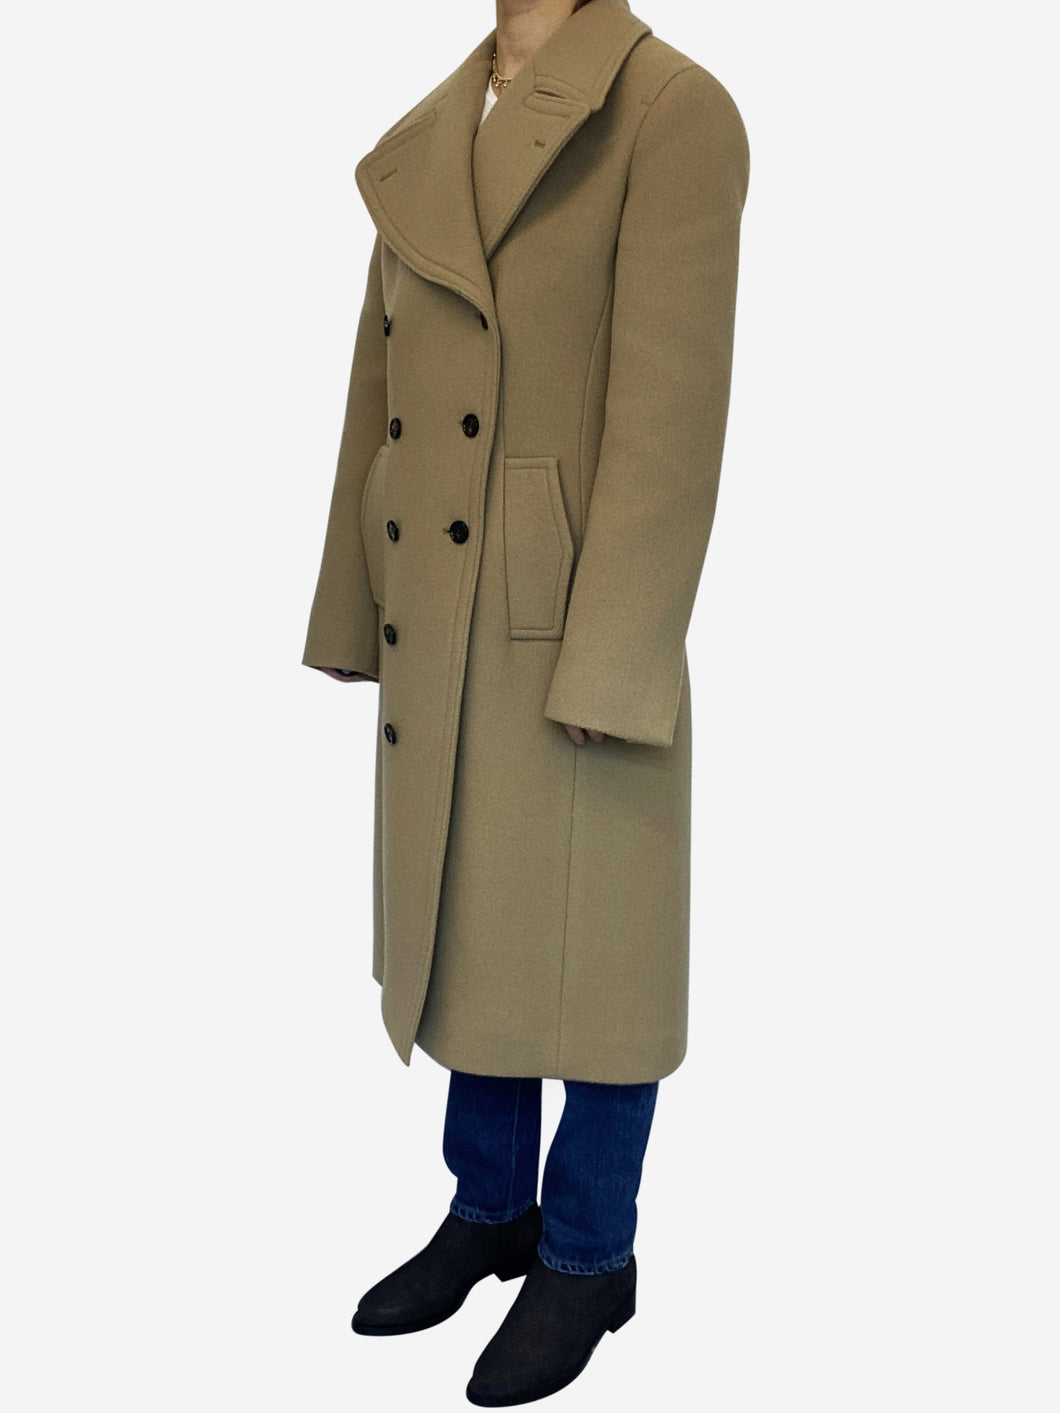 Camel double breasted long coat - size 10